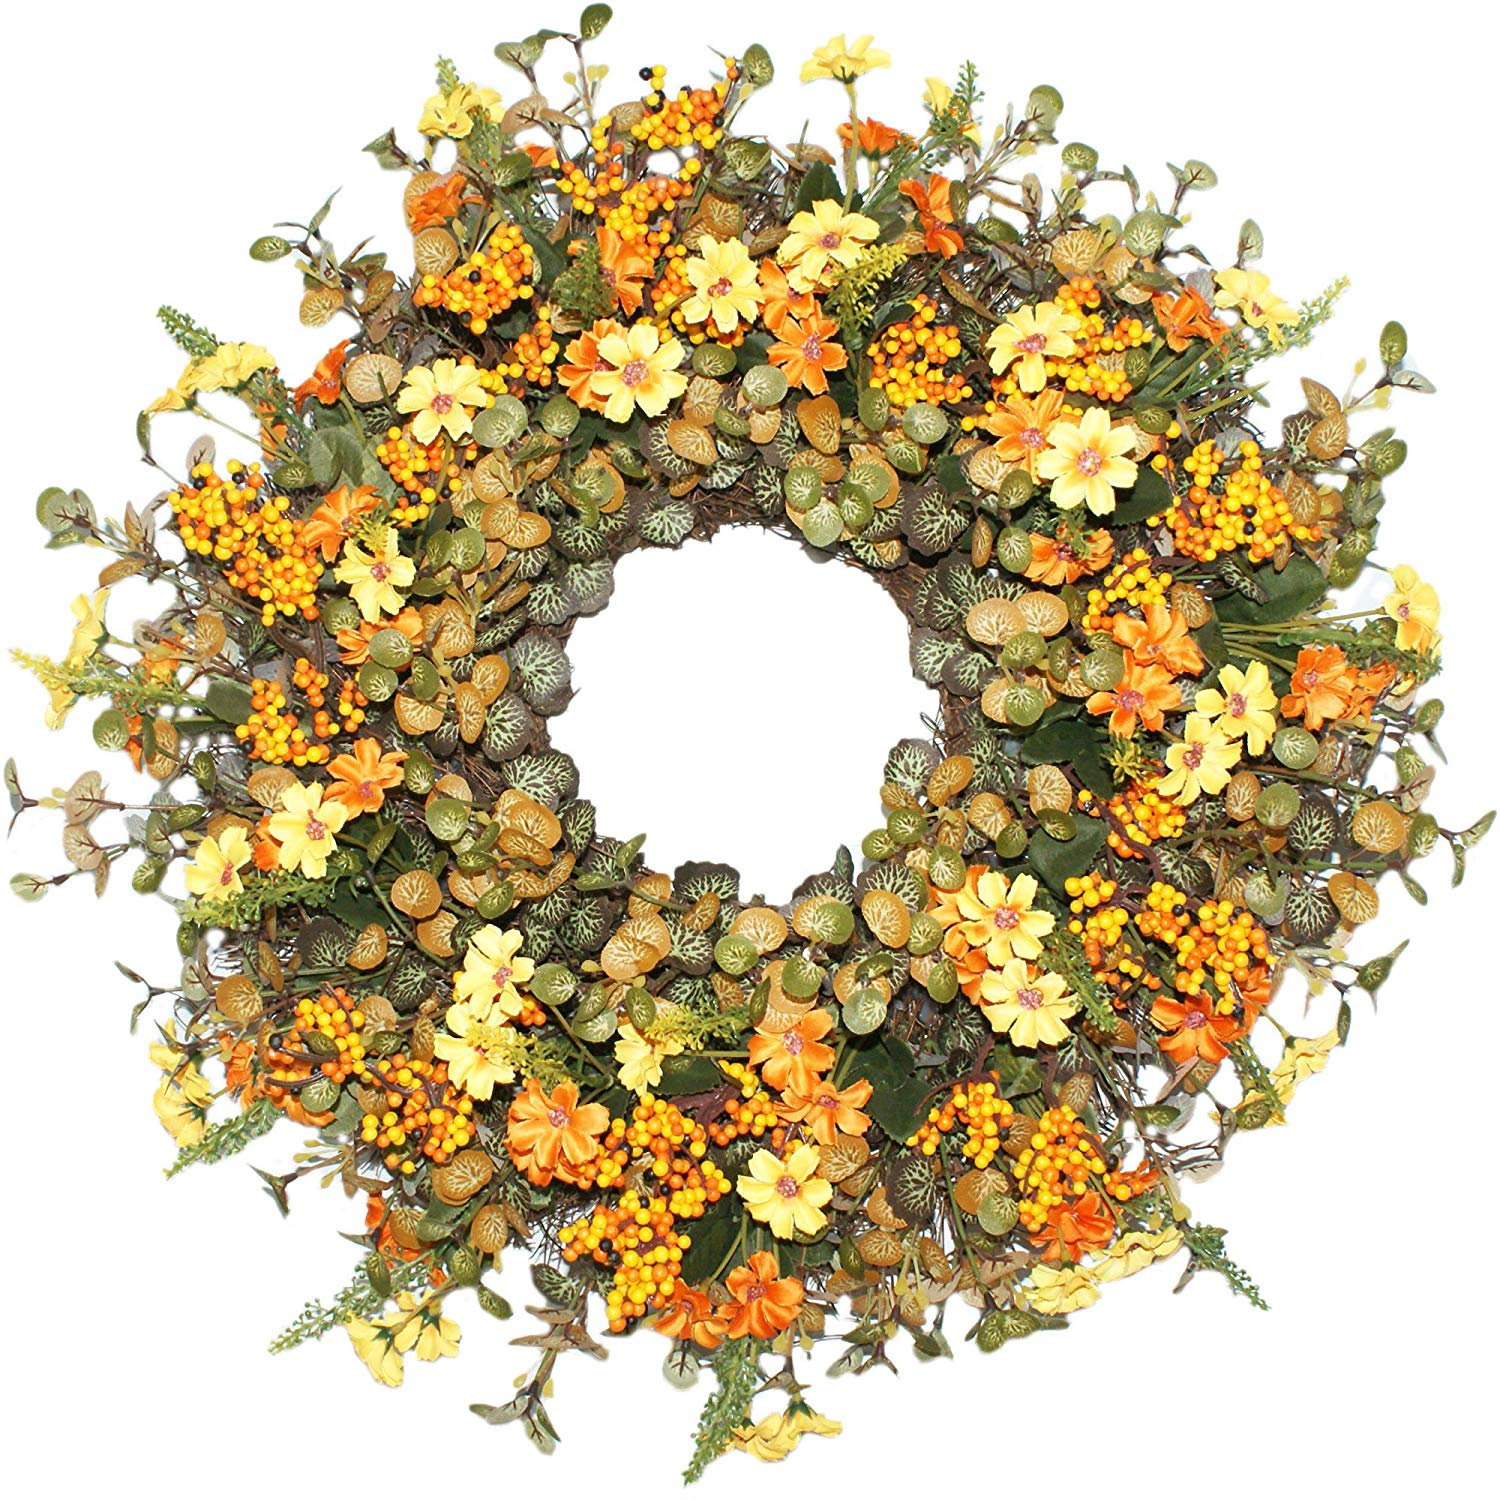 Emlyn Berry Daisy Silk Summer and Fall Front Door Wreath 18 Inches - Brightens Front Door Decor with Vibrant Fall Colors, All Weather Outdoor Wreath That Lasts for Years- Golden Yellow